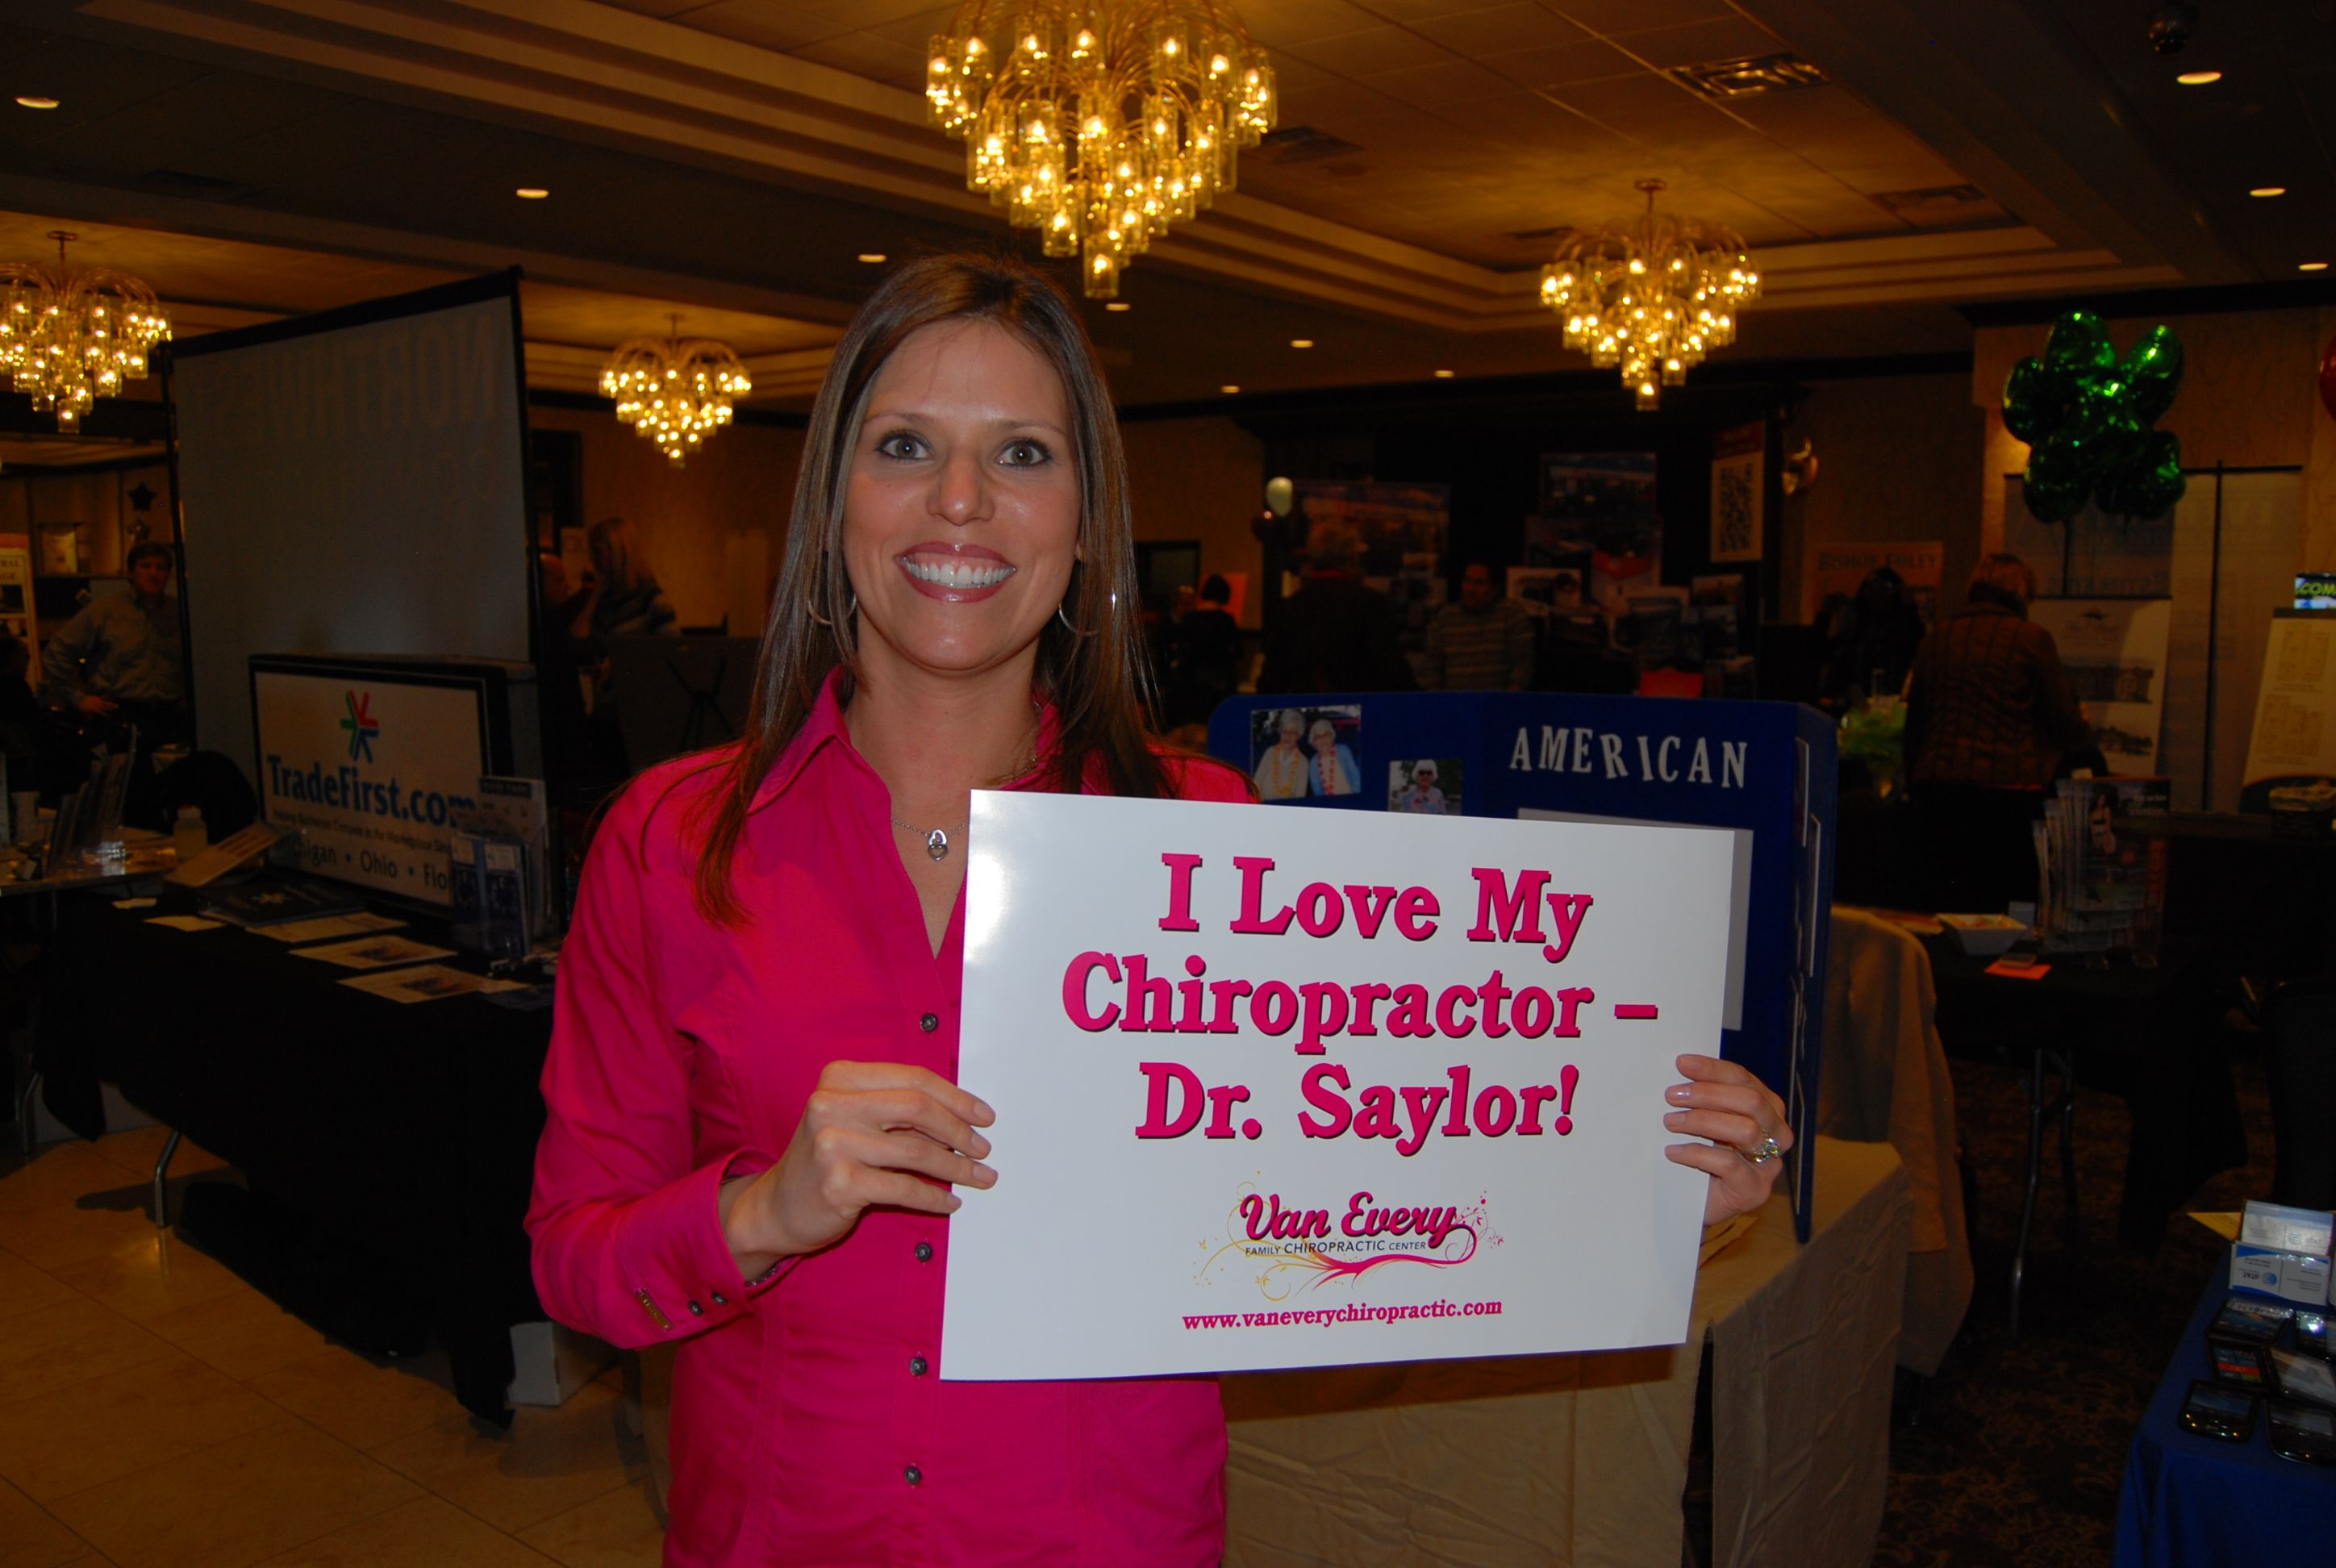 Family chiropractic by Dr. Anna Saylor, Van Every Chi on I